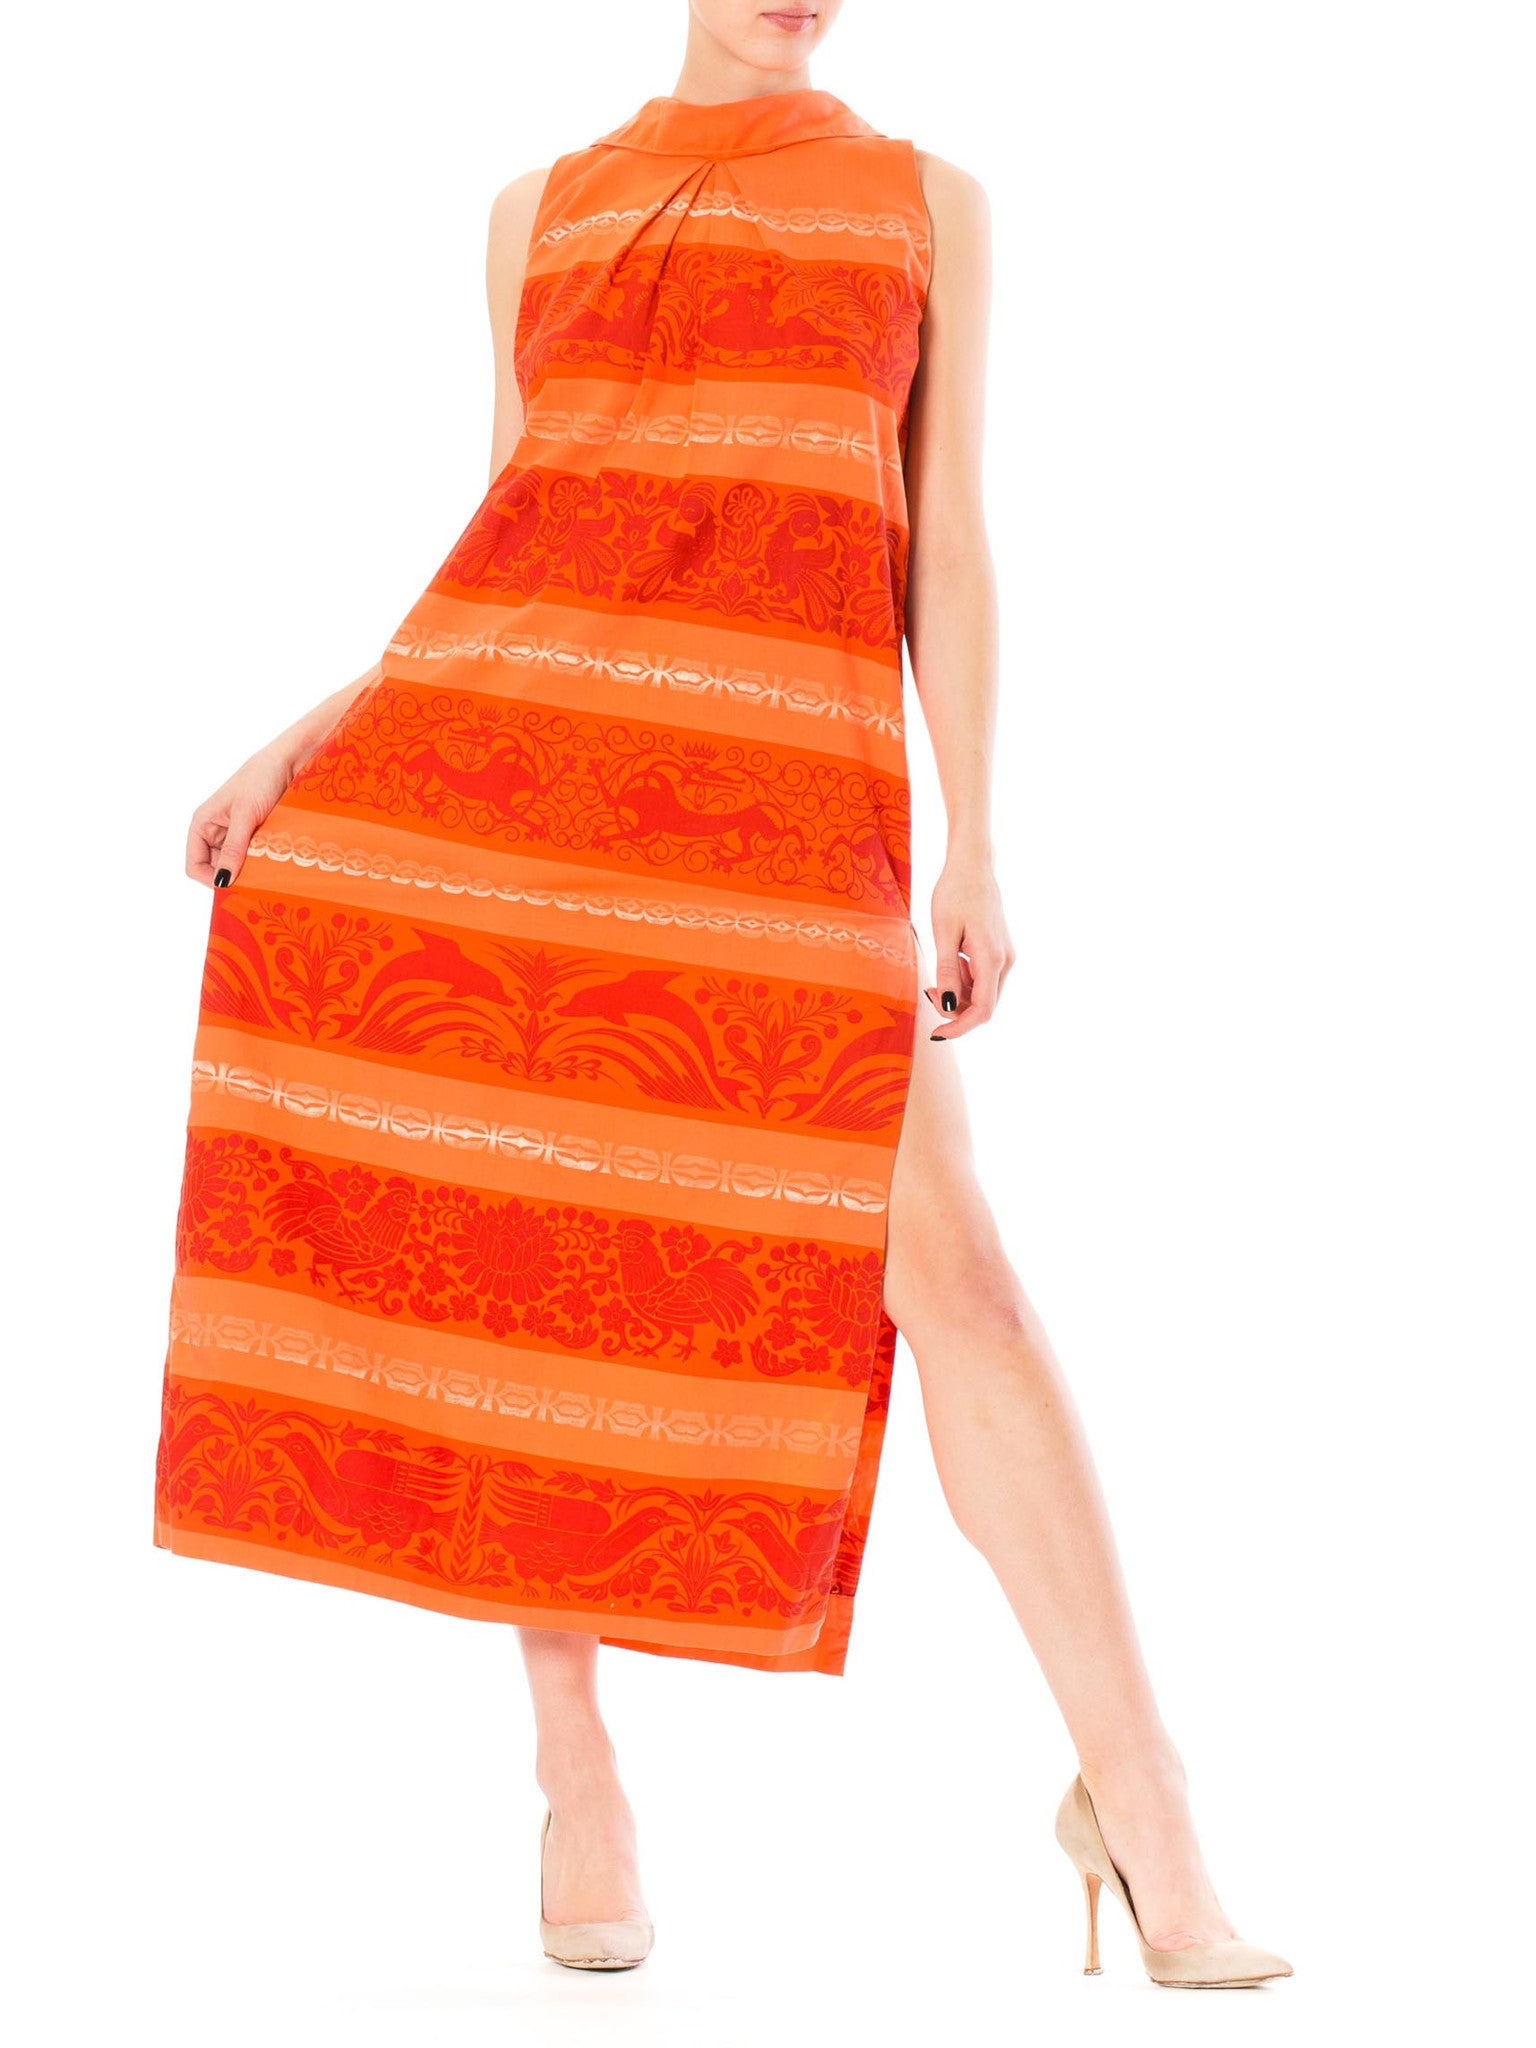 1960S Coral Cotton Tiki Print Maxi Dress With Side Slit From St. Lucia